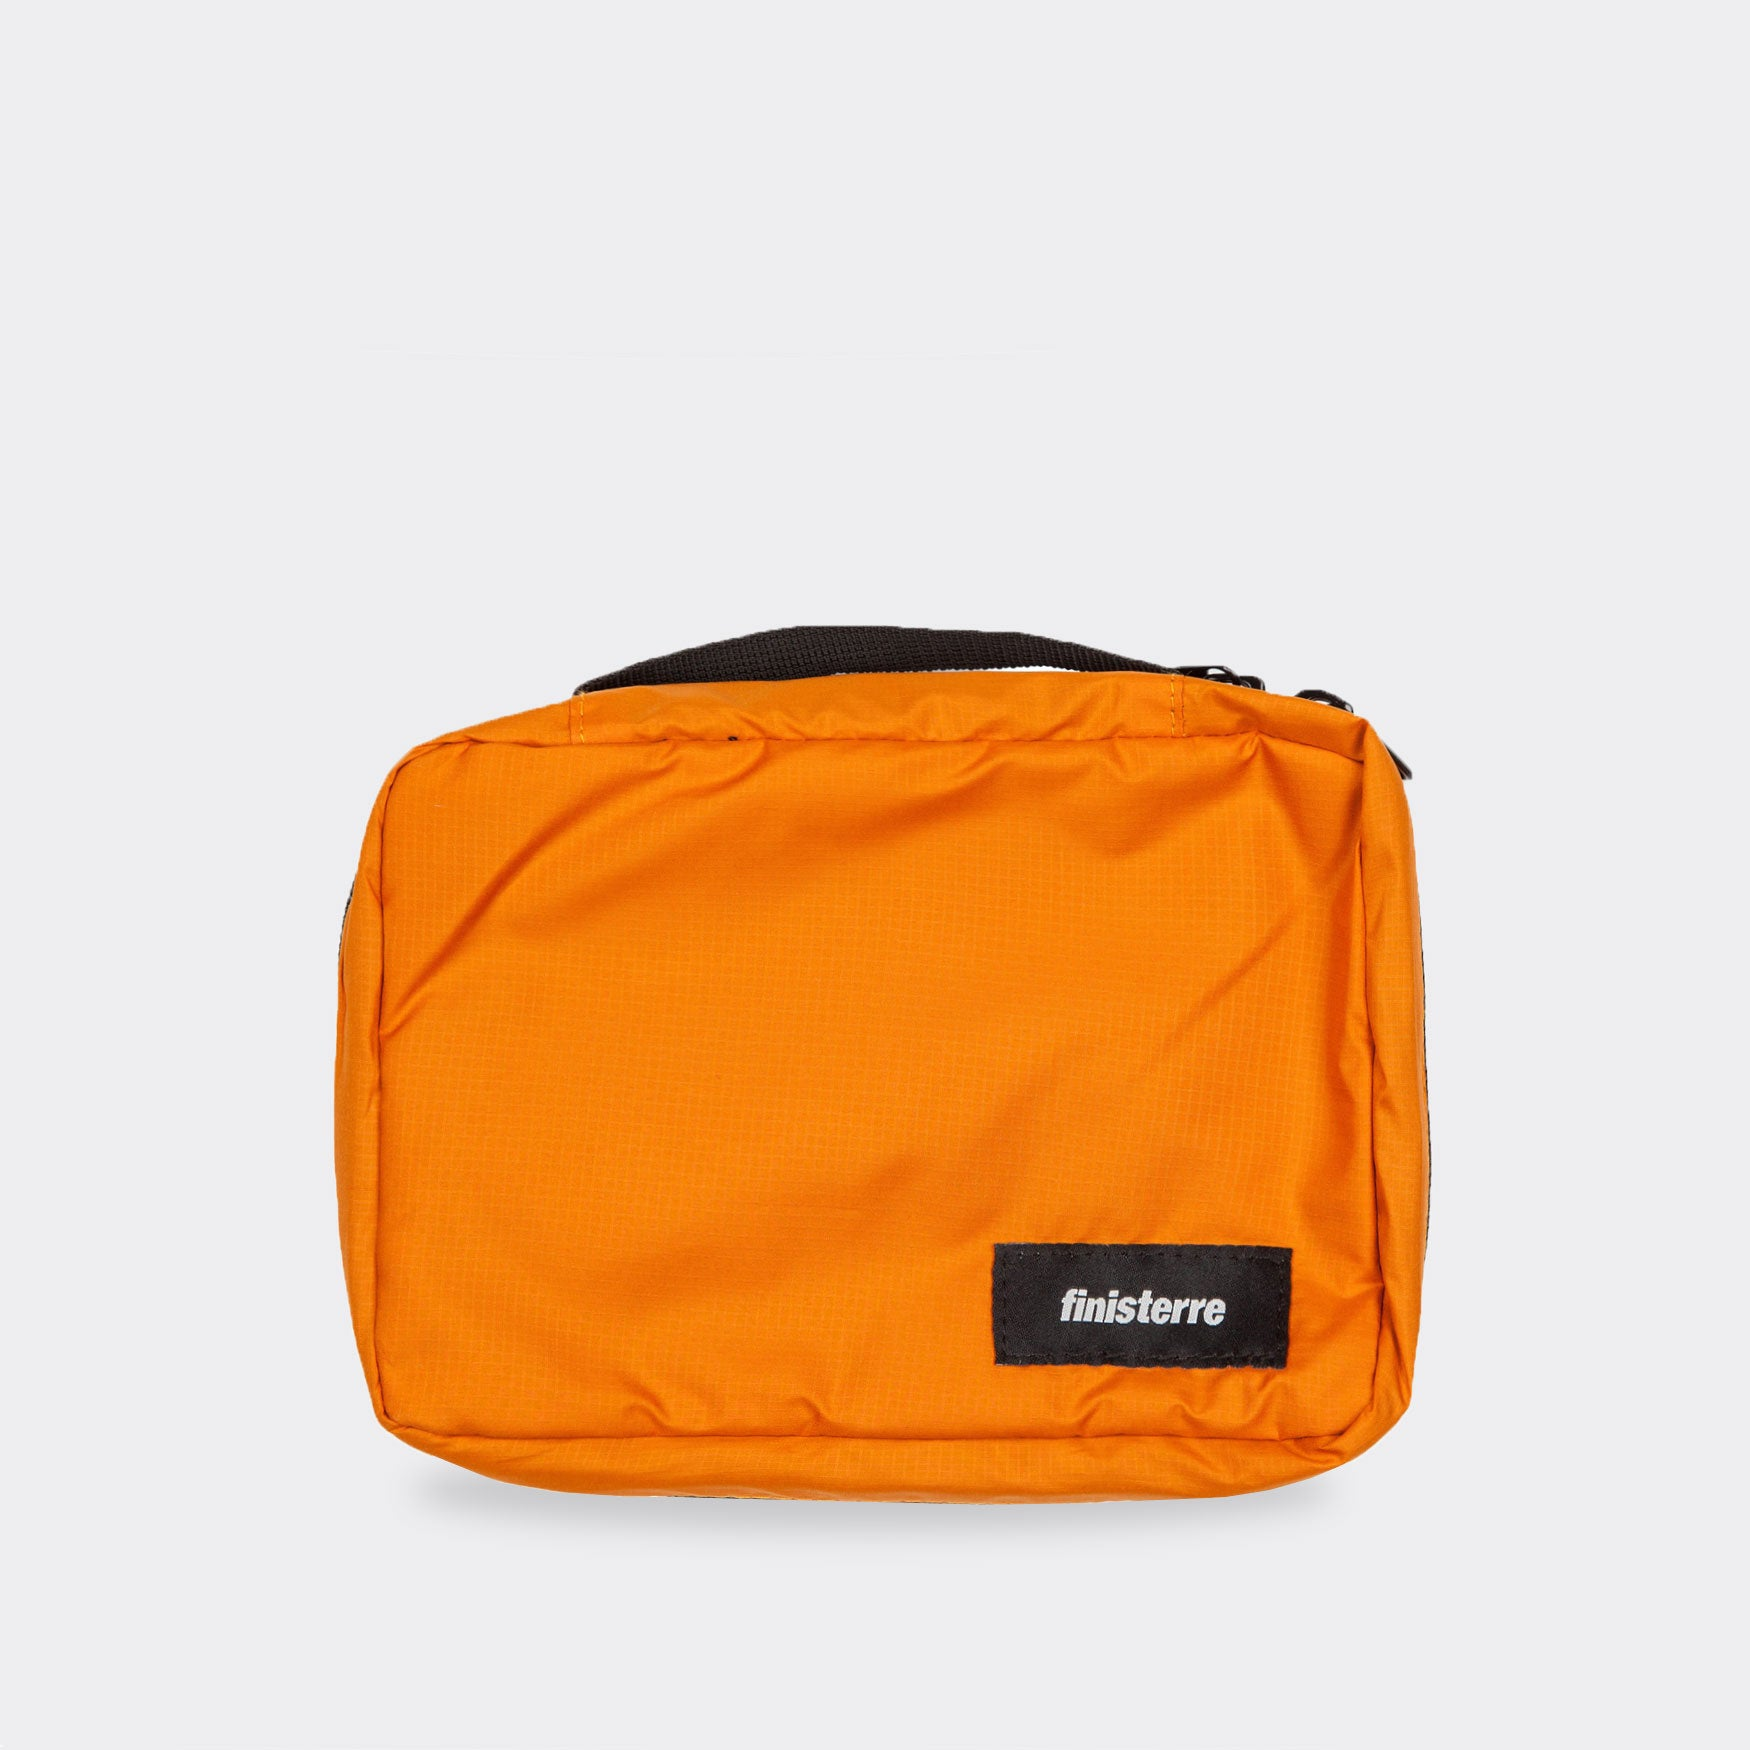 Finisterre Small Wash Bag - Russet - CARTOCON